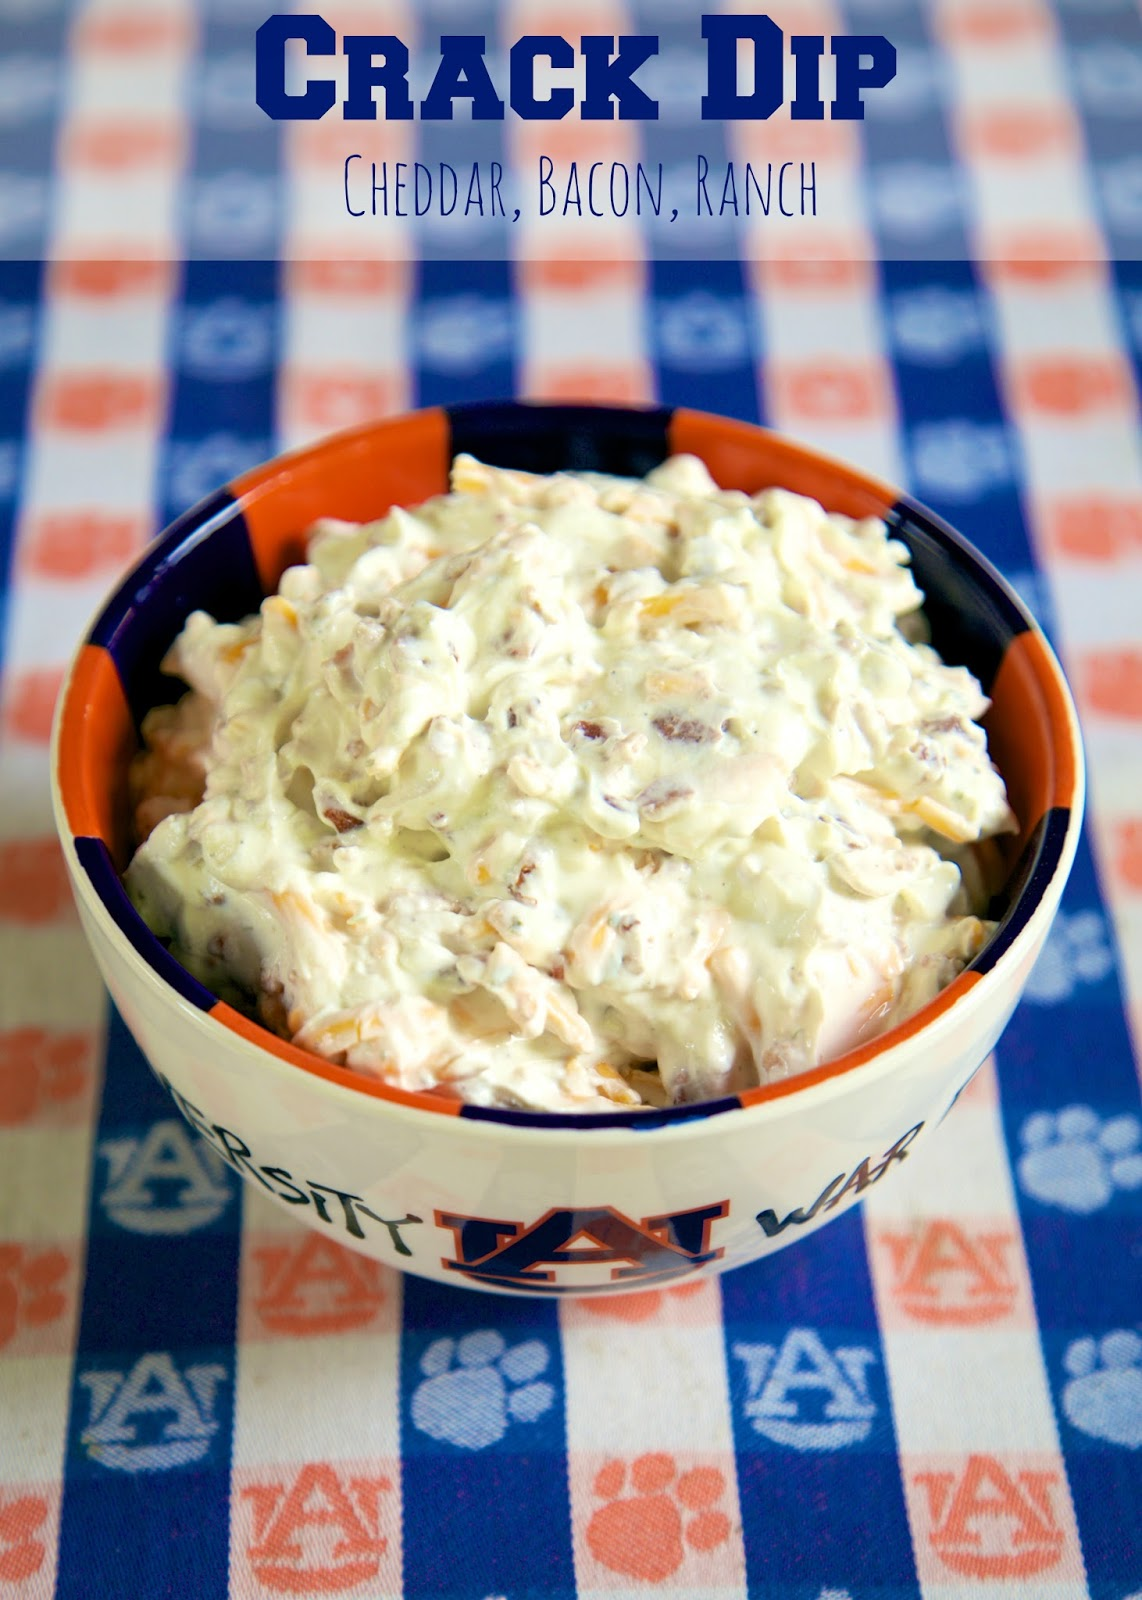 Cheddar Bacon Dip - The ORIGINAL Crack Dip - I always double the recipe and there is never any leftovers! People go crazy for this dip!! Sour cream dip loaded with cheddar, bacon and ranch. This dip is crazy addictive!! SO good!